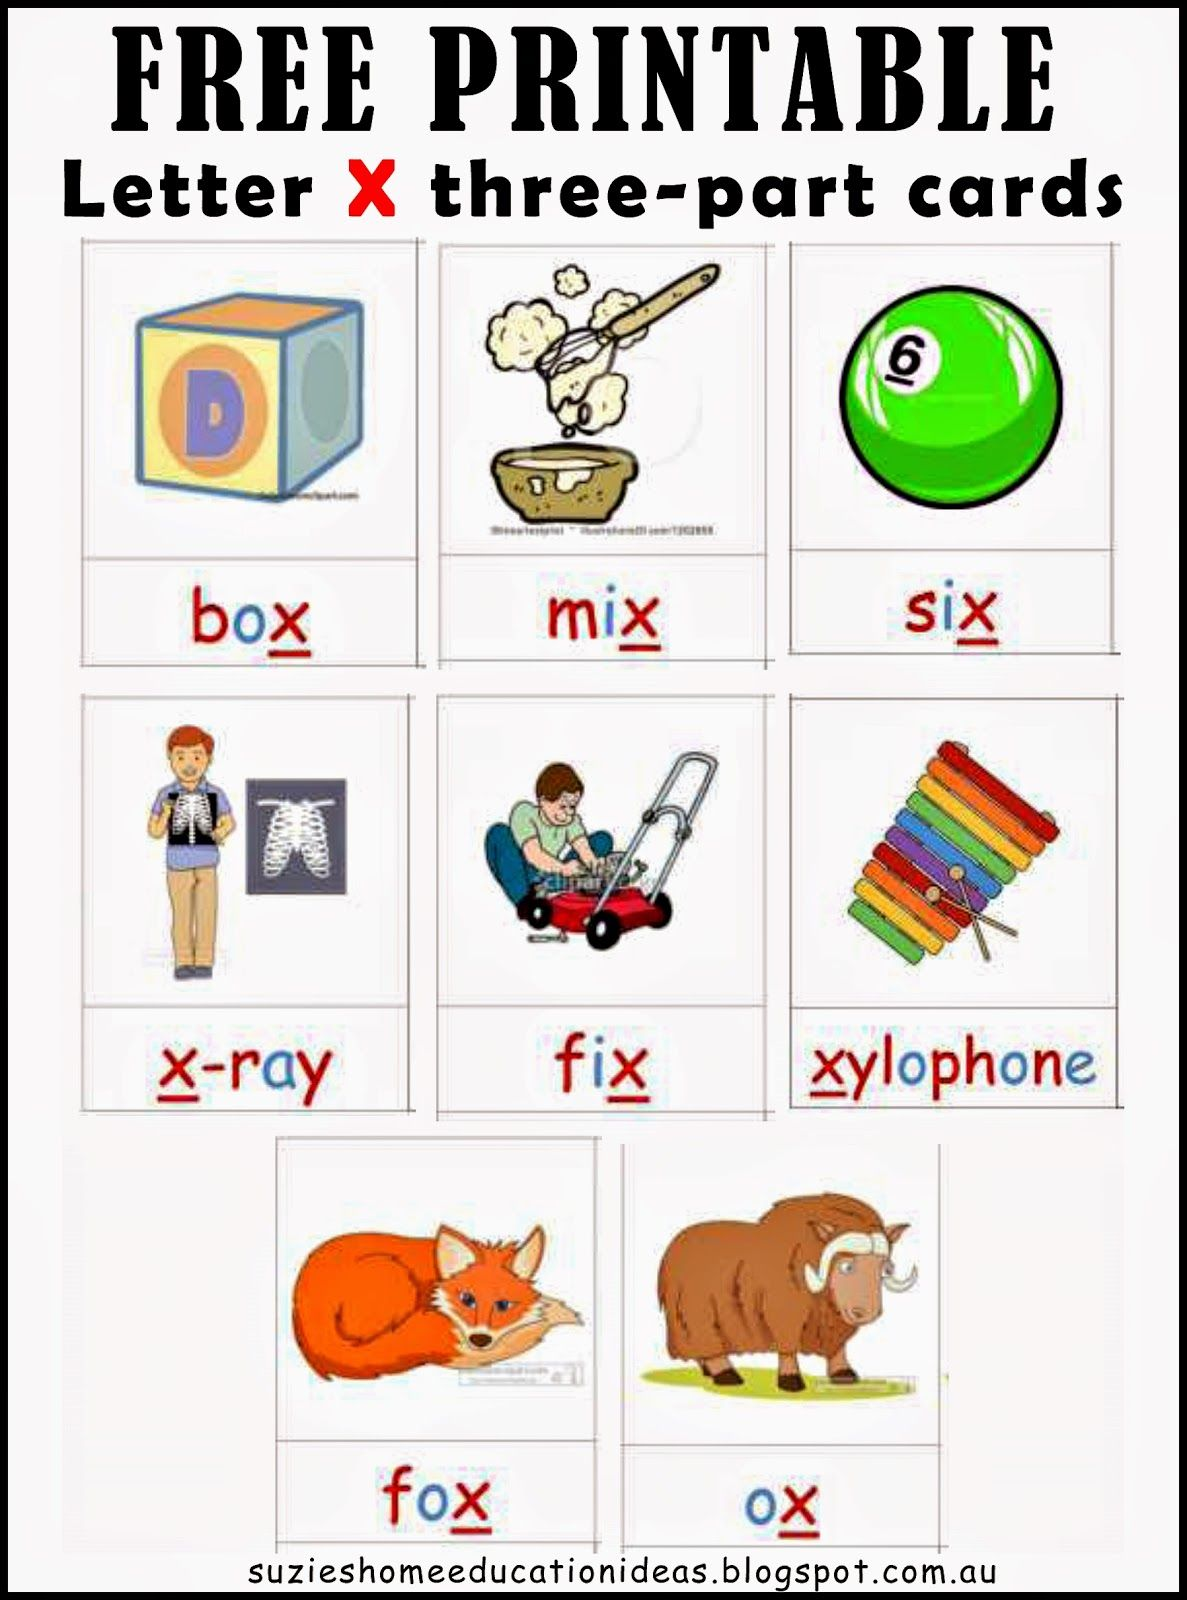 Letter X Printable Cards And Activity Ideas Home Education Preschool Activities Printables Kids